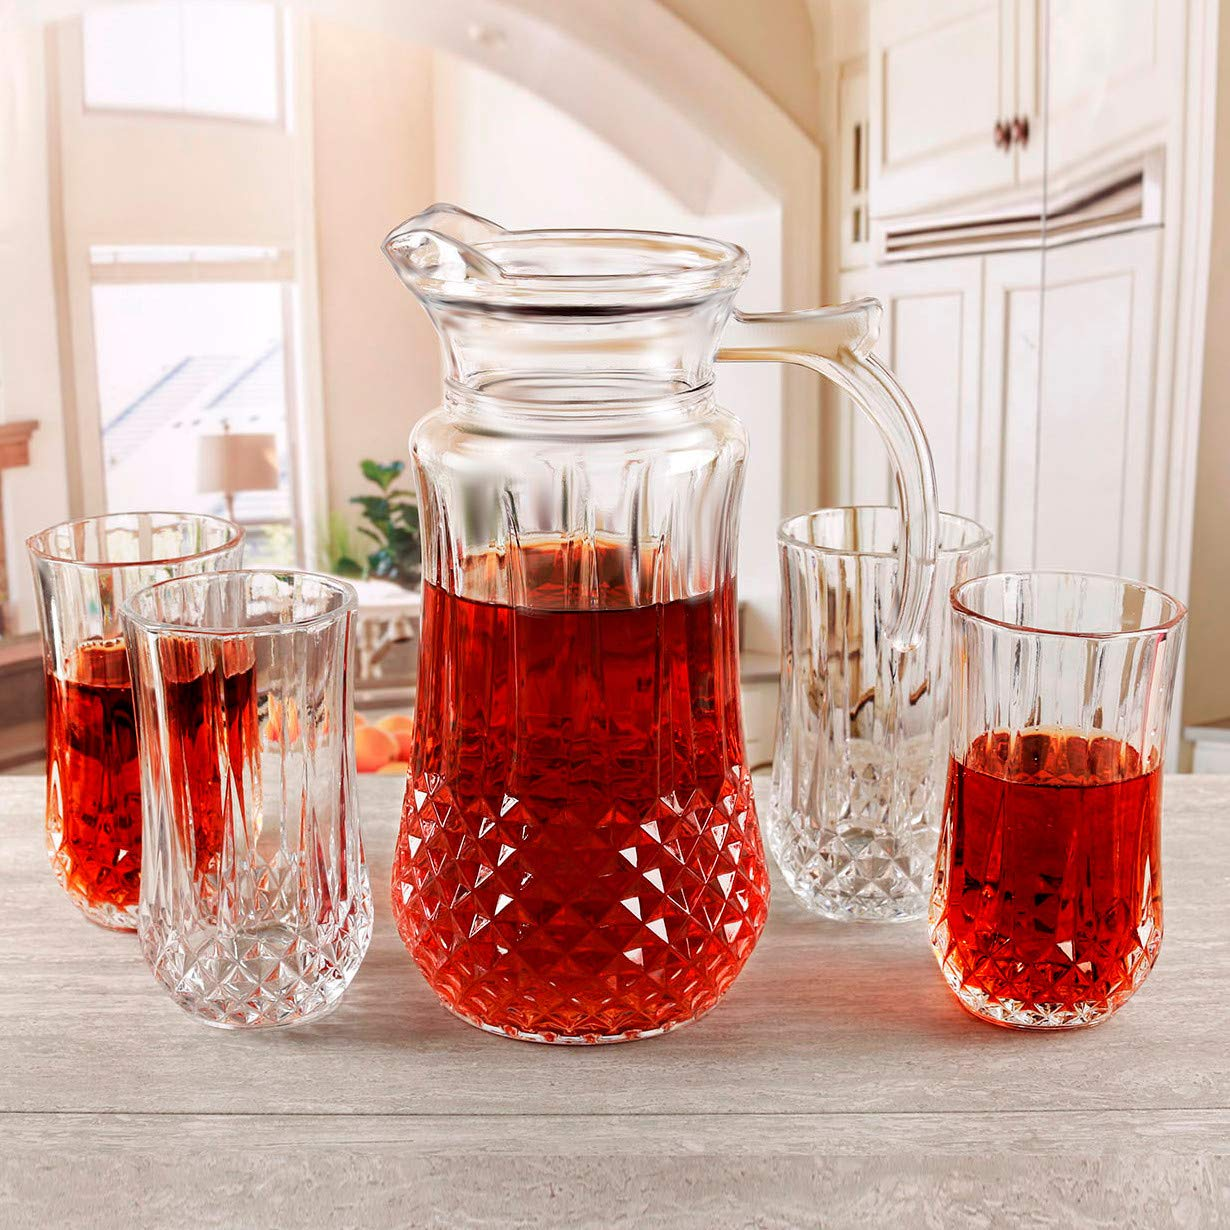 Circleware Elite Beverage Carafe Water Pitcher with Handle and Drinking Glasses, Kitchen Glassware for Water, Juice, Beer, Wine, Home Decor & Dining Gifts, 5 Piece Set of 1-59 oz, 4-12 oz, Clear